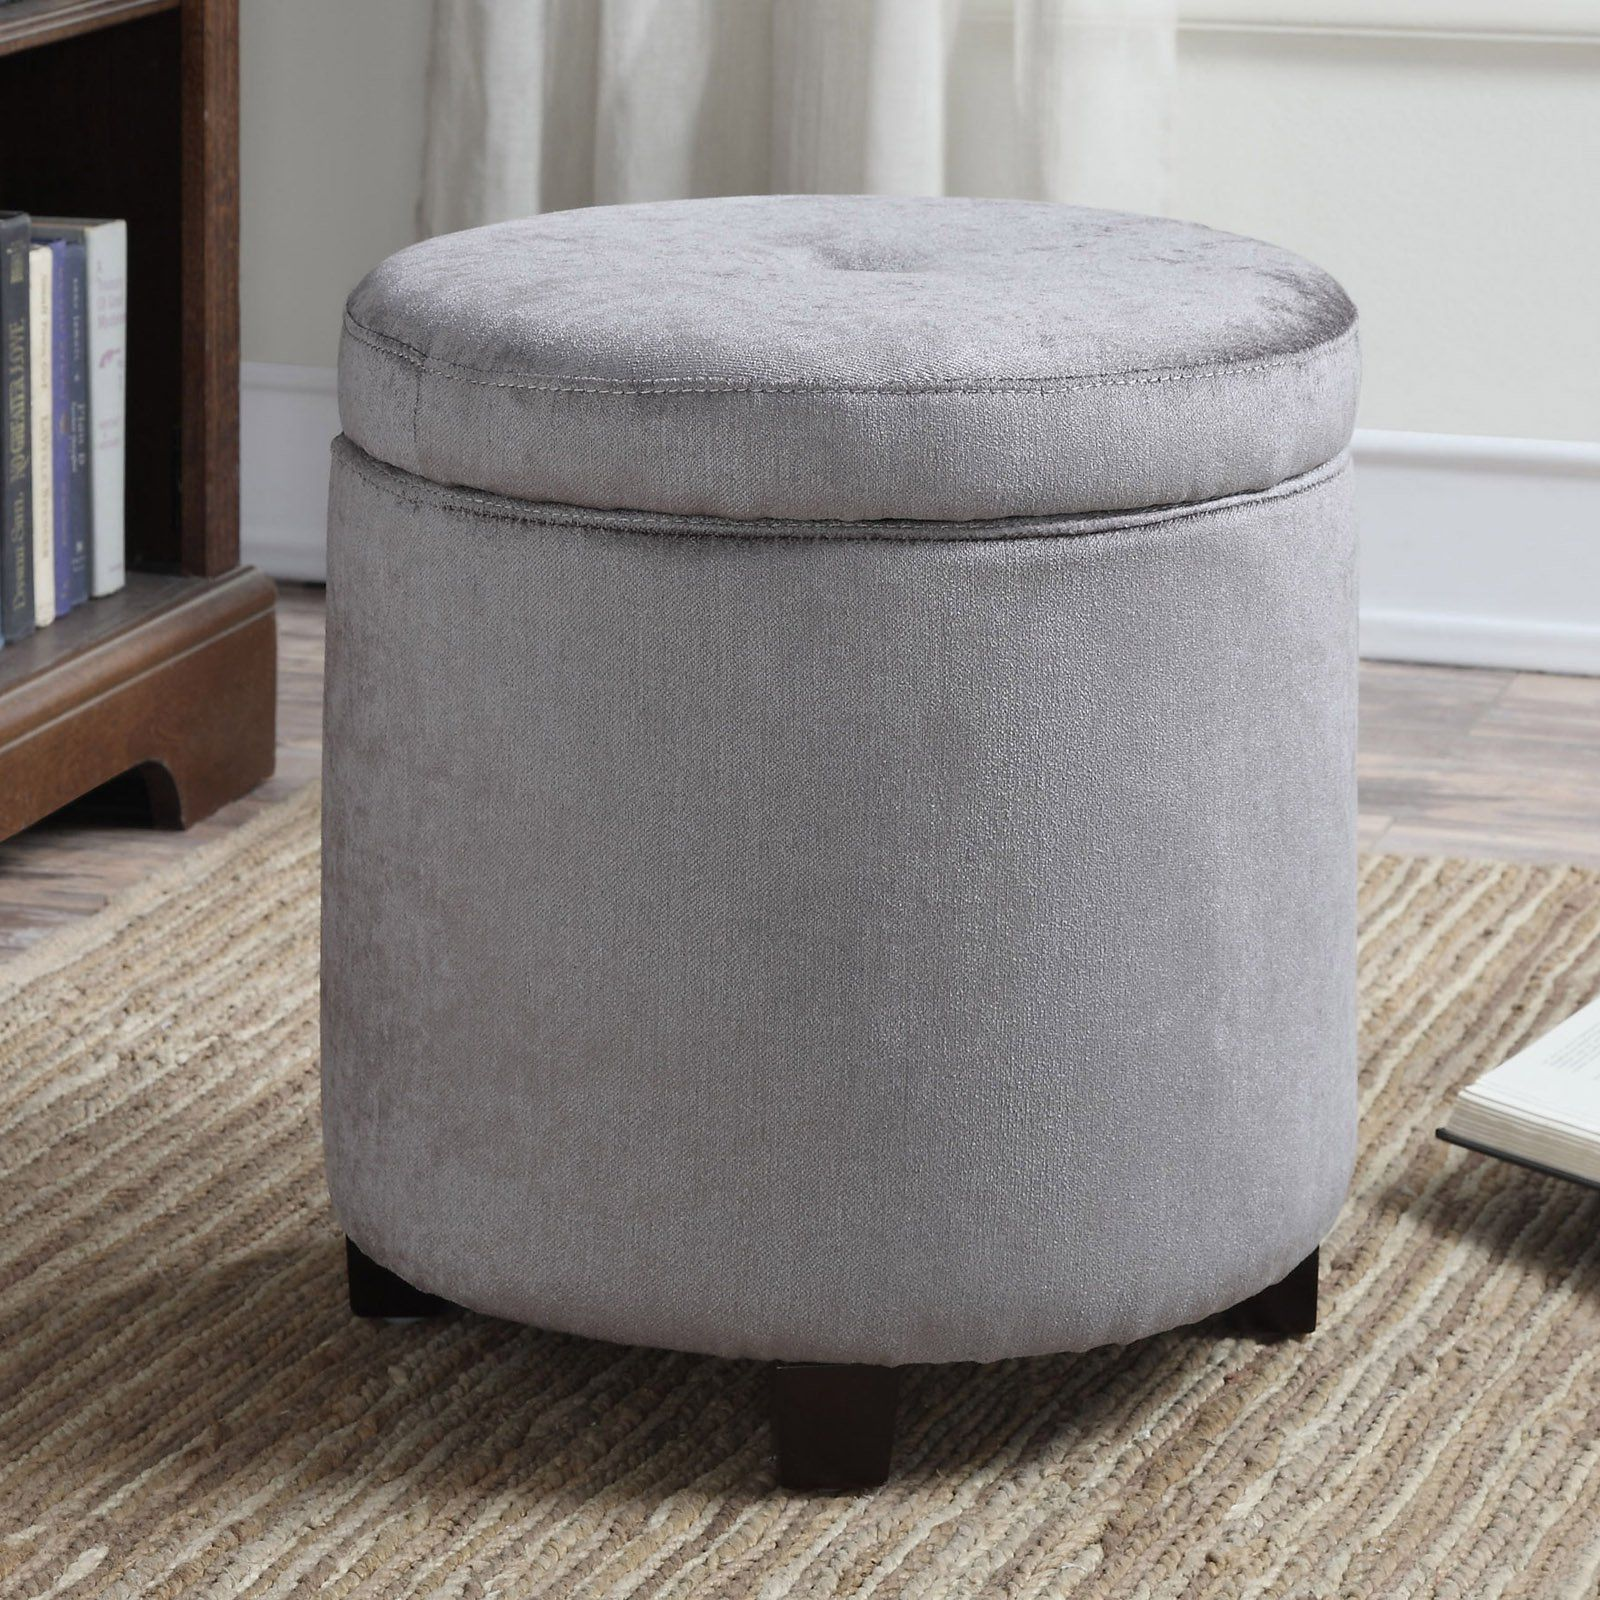 Terrific Christies Home Living Mia Upholstered Storage Ottoman From Gmtry Best Dining Table And Chair Ideas Images Gmtryco